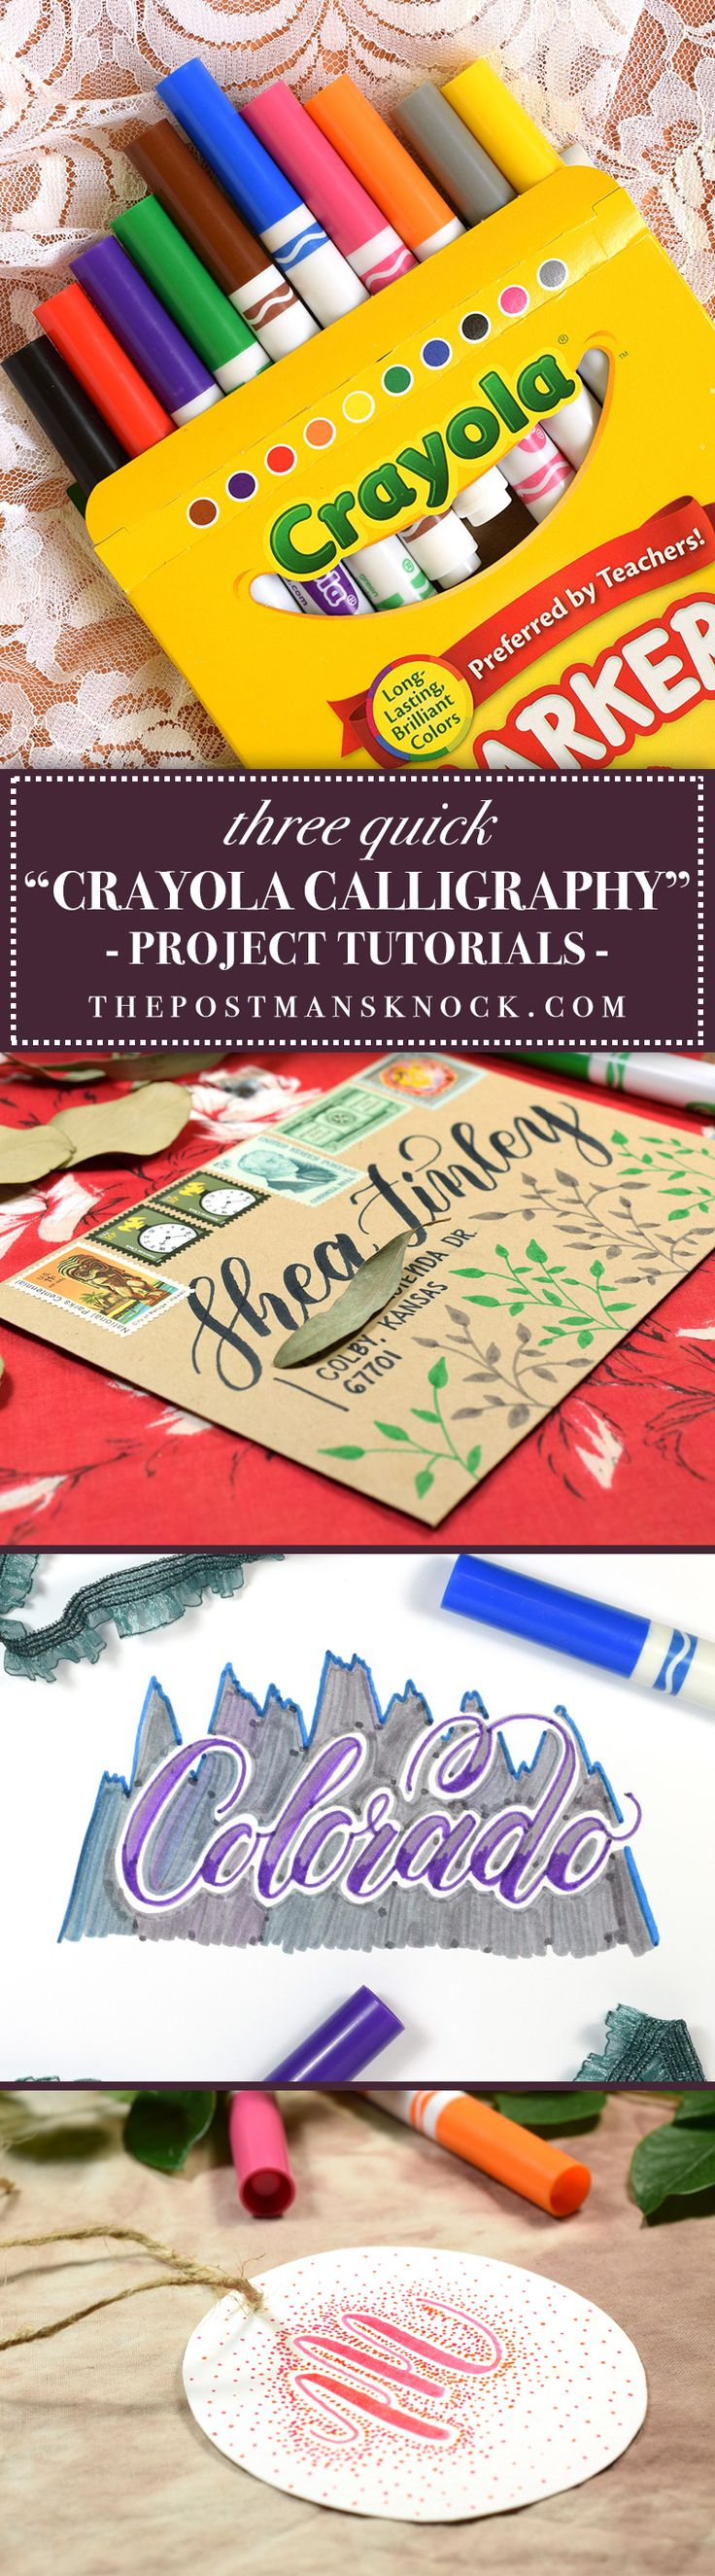 """If you struggle with making time for creativity, try """"Crayola calligraphy""""! Crayola (and similar) markers are cost-effective and can be used to make some impressive projects. In this post, you'll learn about three Crayola calligraphy paper goods that come together in just a couple of minutes!"""